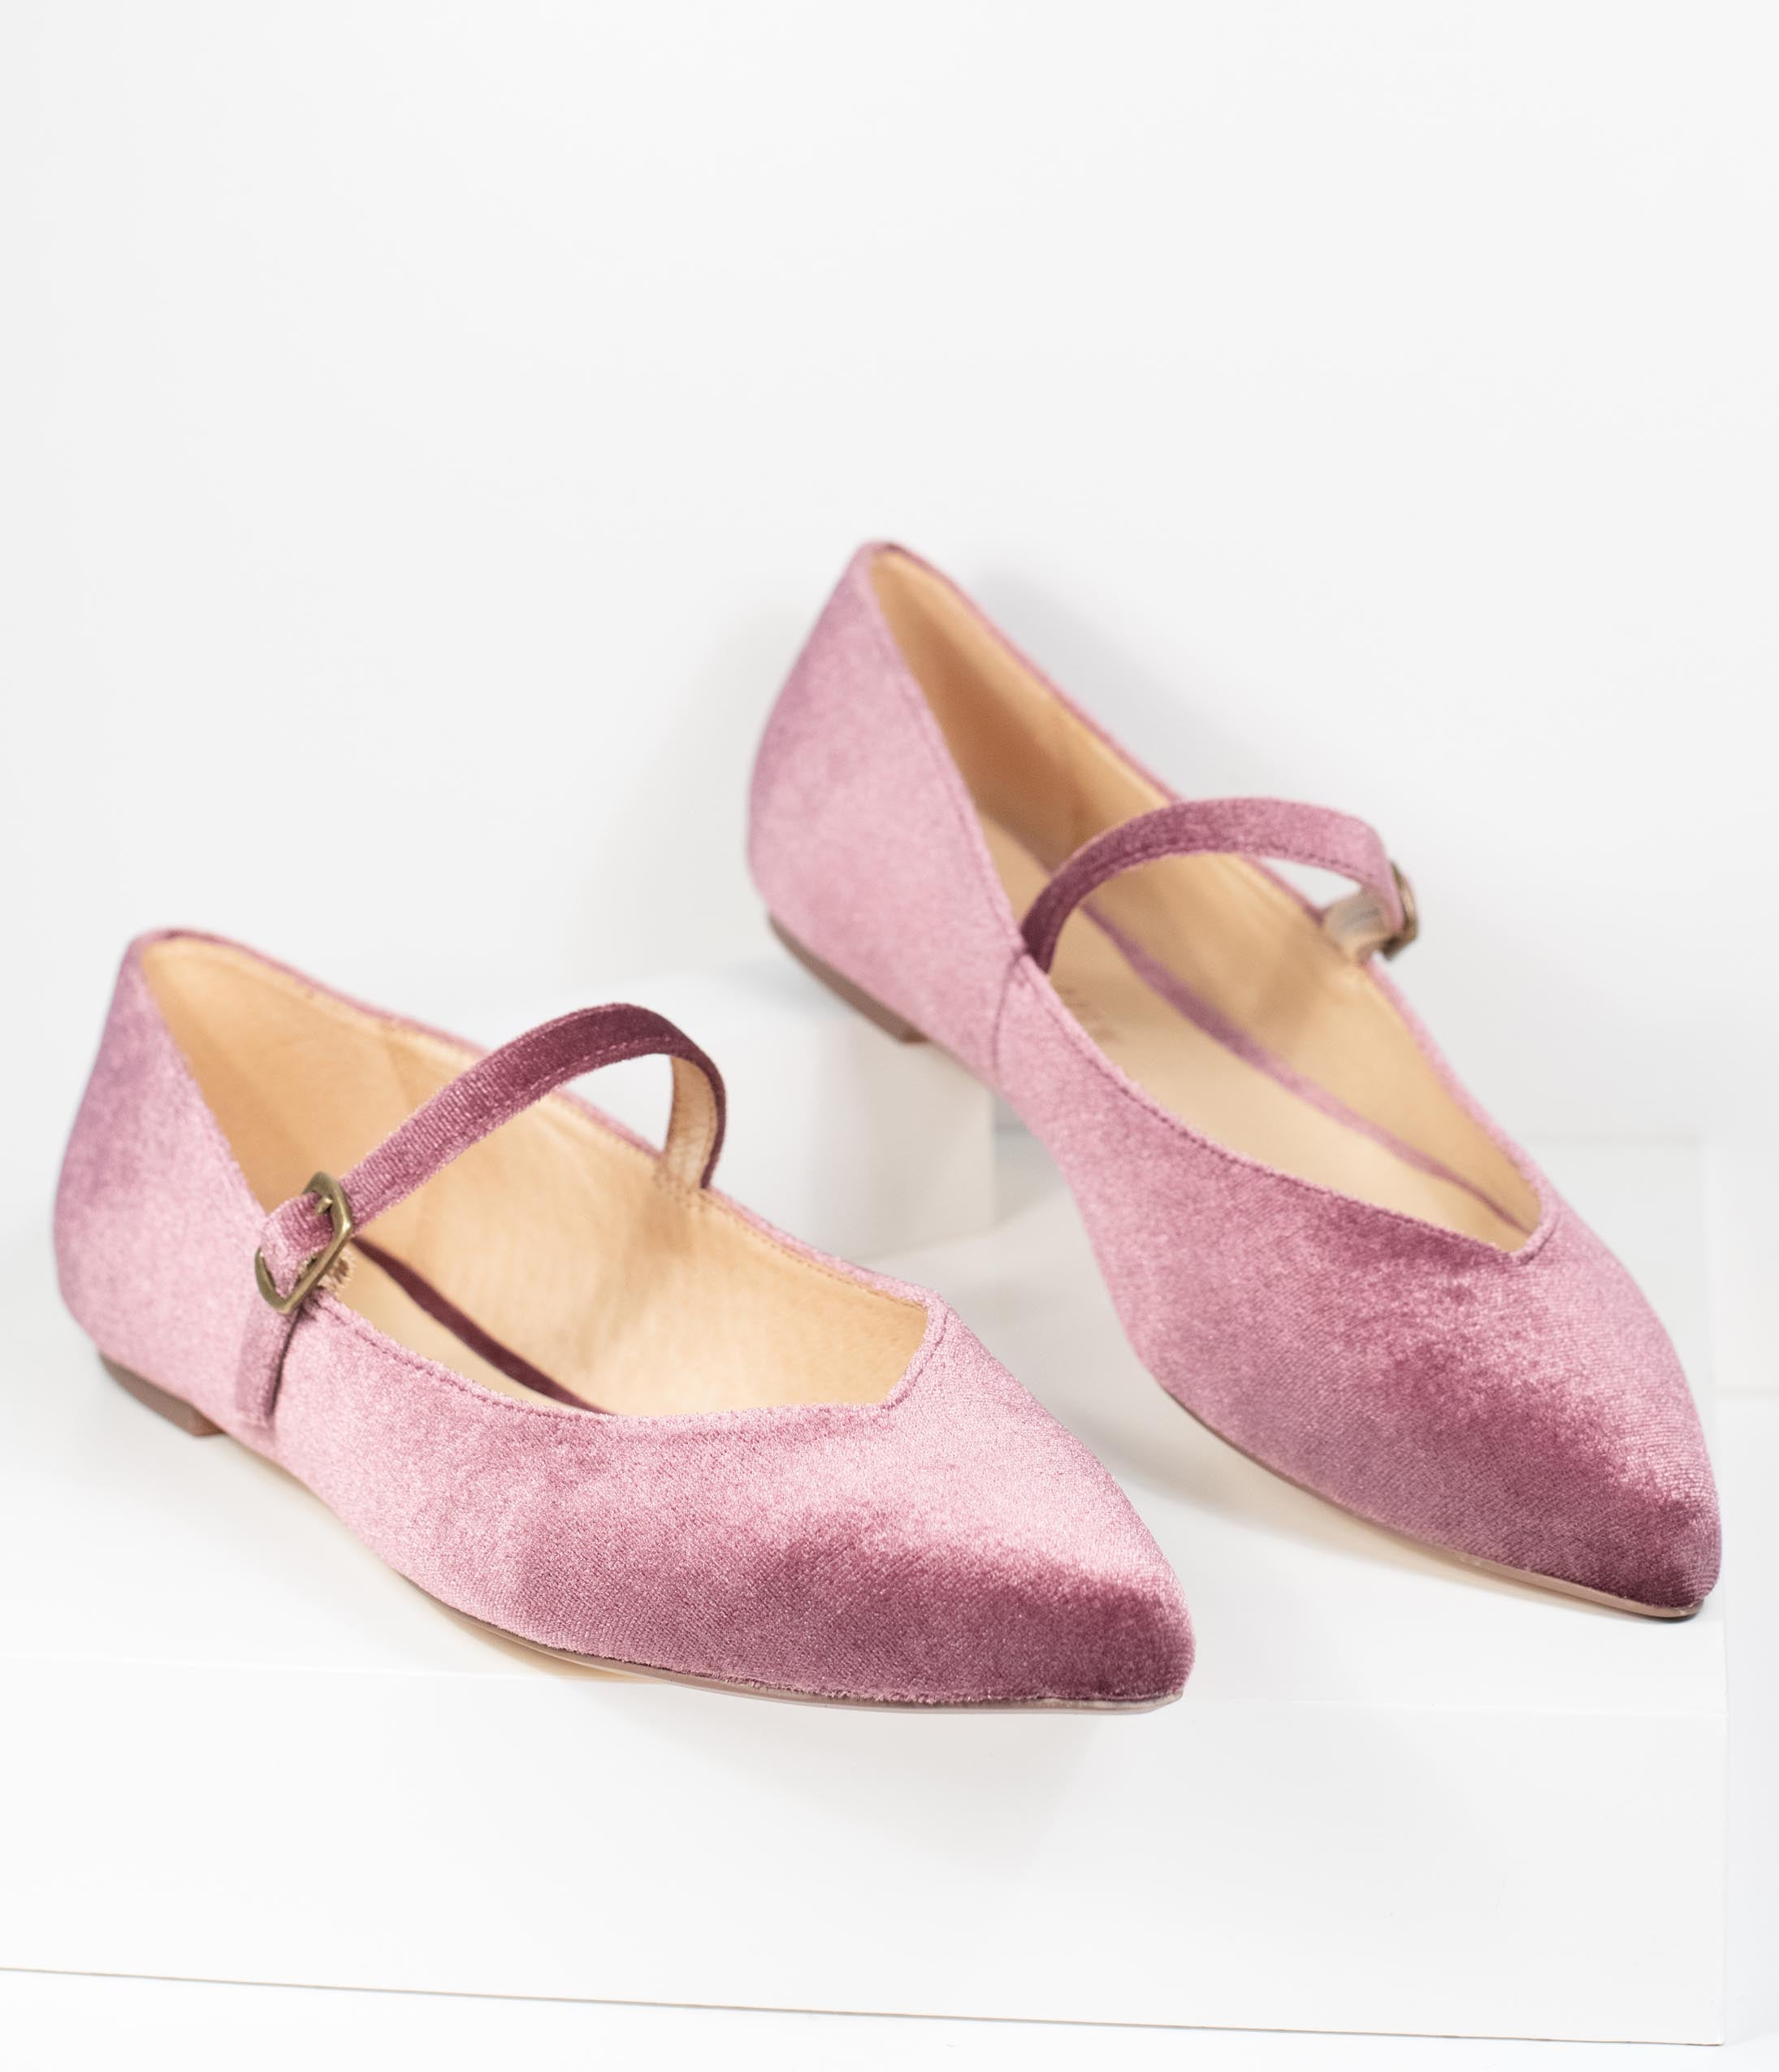 Retro Vintage Flats and Low Heel Shoes Chelsea Crew Rose Velvet Prime Mary Jane Flats $68.00 AT vintagedancer.com